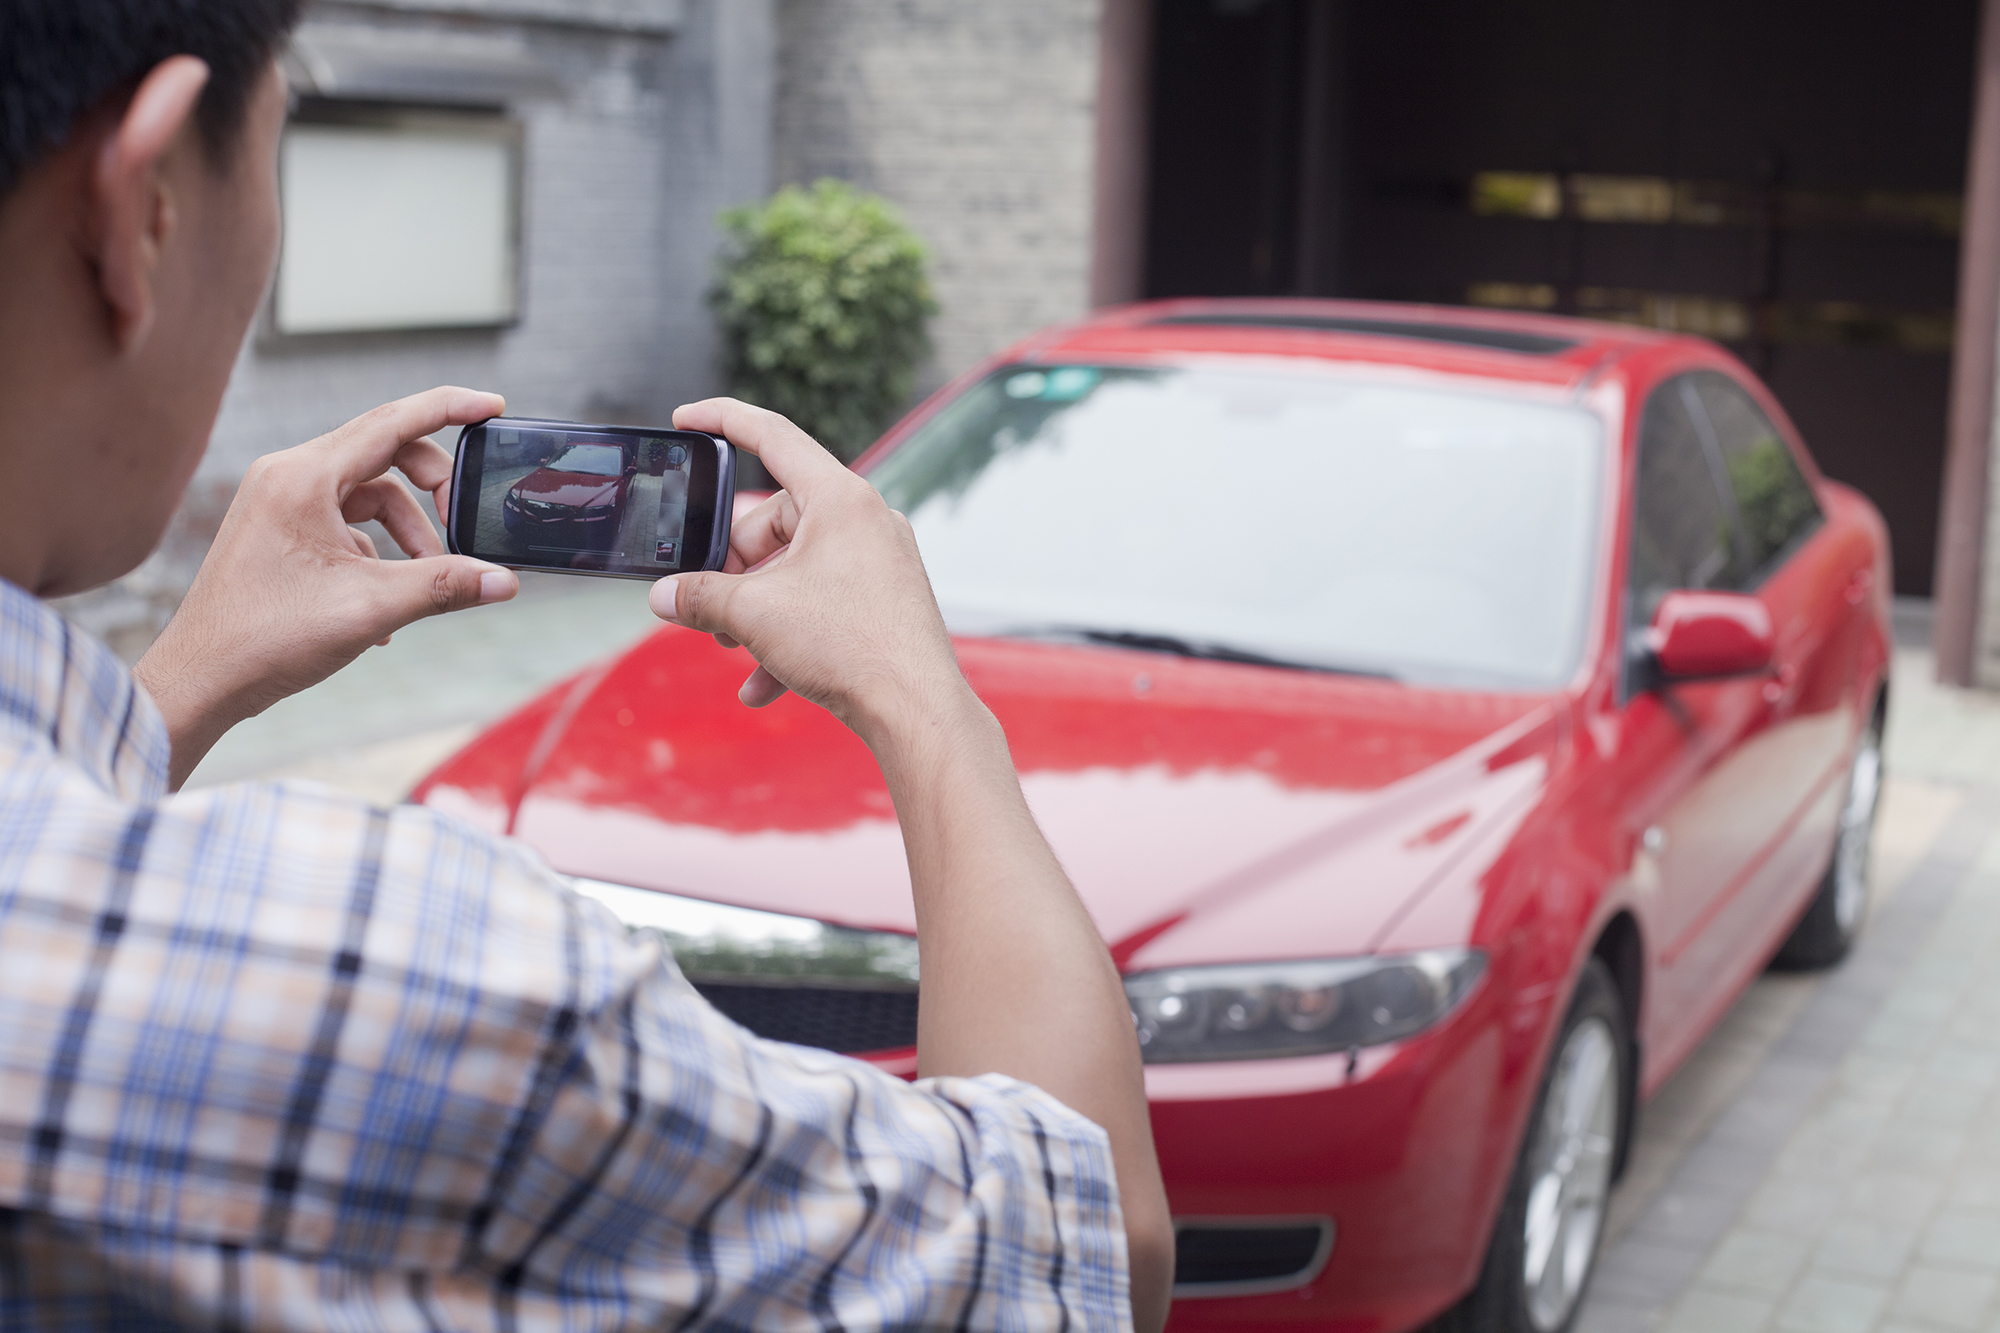 Spend time getting the right photo, according to Motorway (Image: Shutterstock)